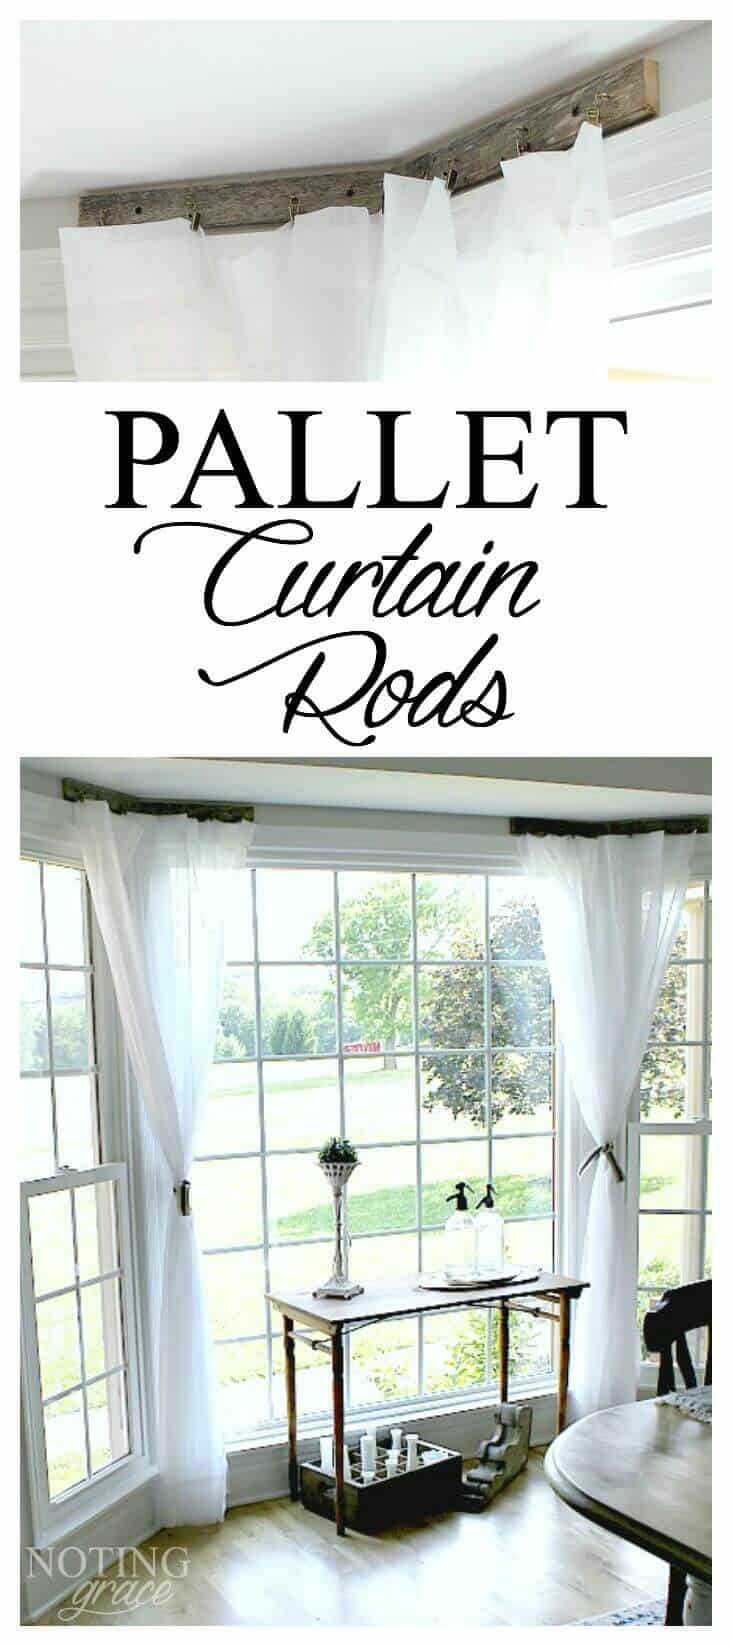 Pallet Curtain Rods - I needed a solution for my bay window and came up with this unique idea.